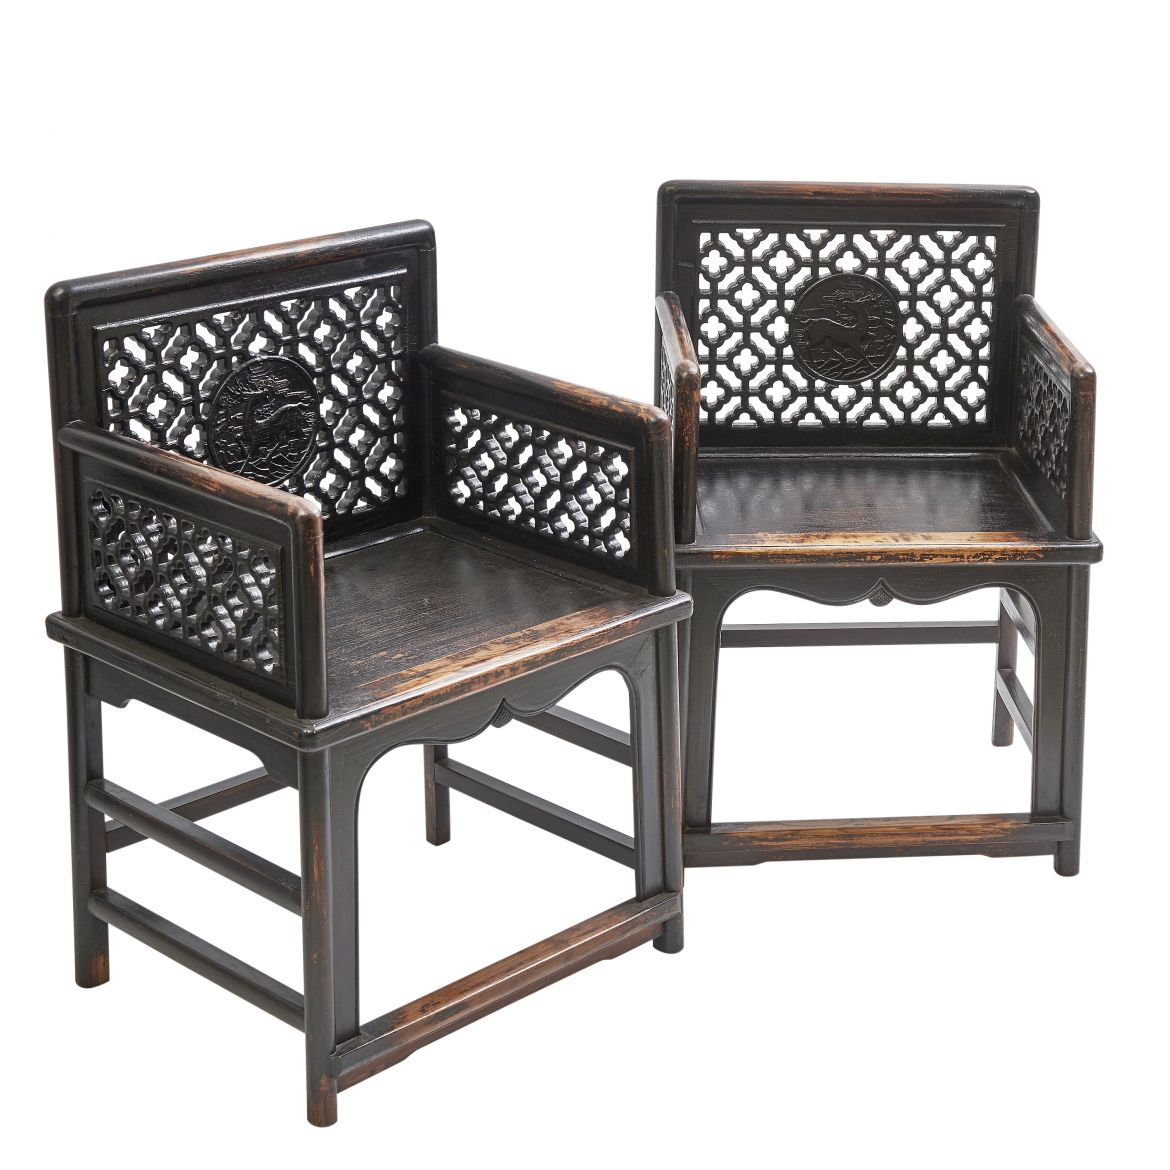 Chinese Elm Court Chairs